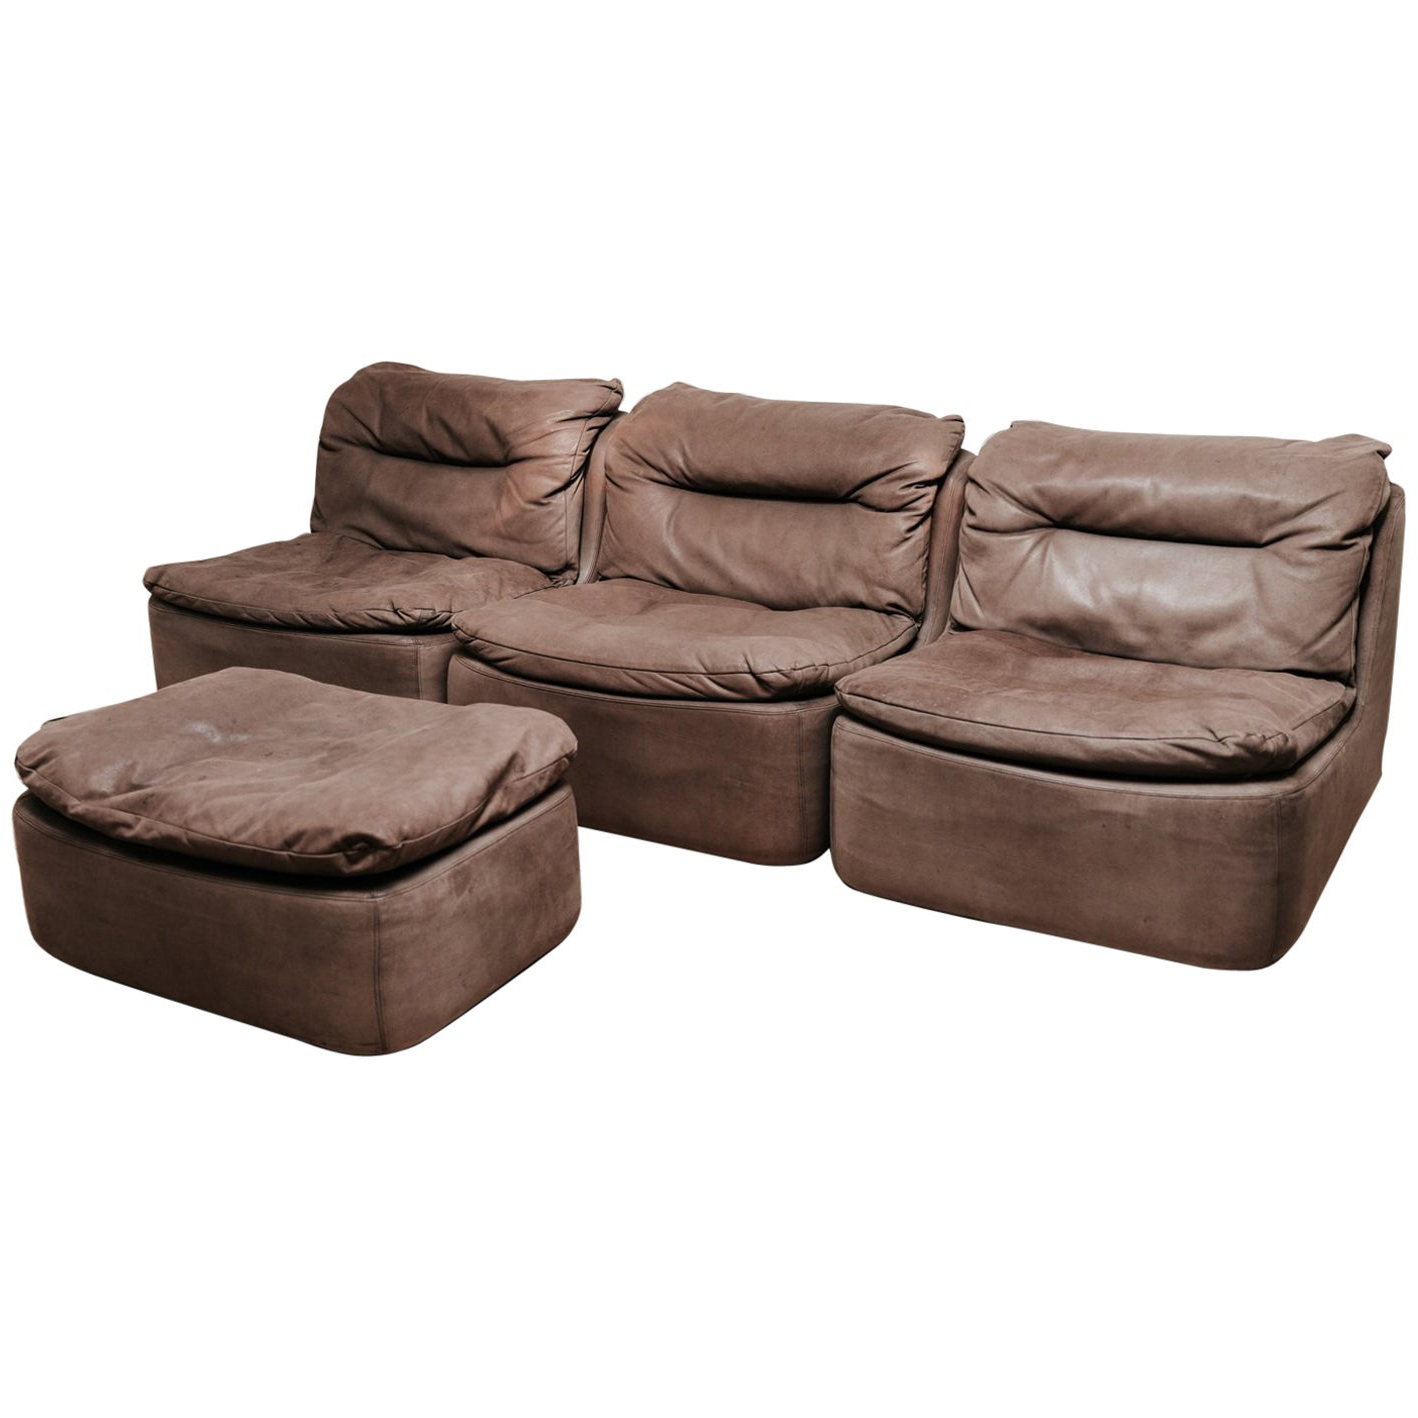 Most Popular 20th Century Leather Modular/sectional Sofa At 1stdibs With Regard To Brecht Patio Sectionals With Cushions (Gallery 20 of 25)